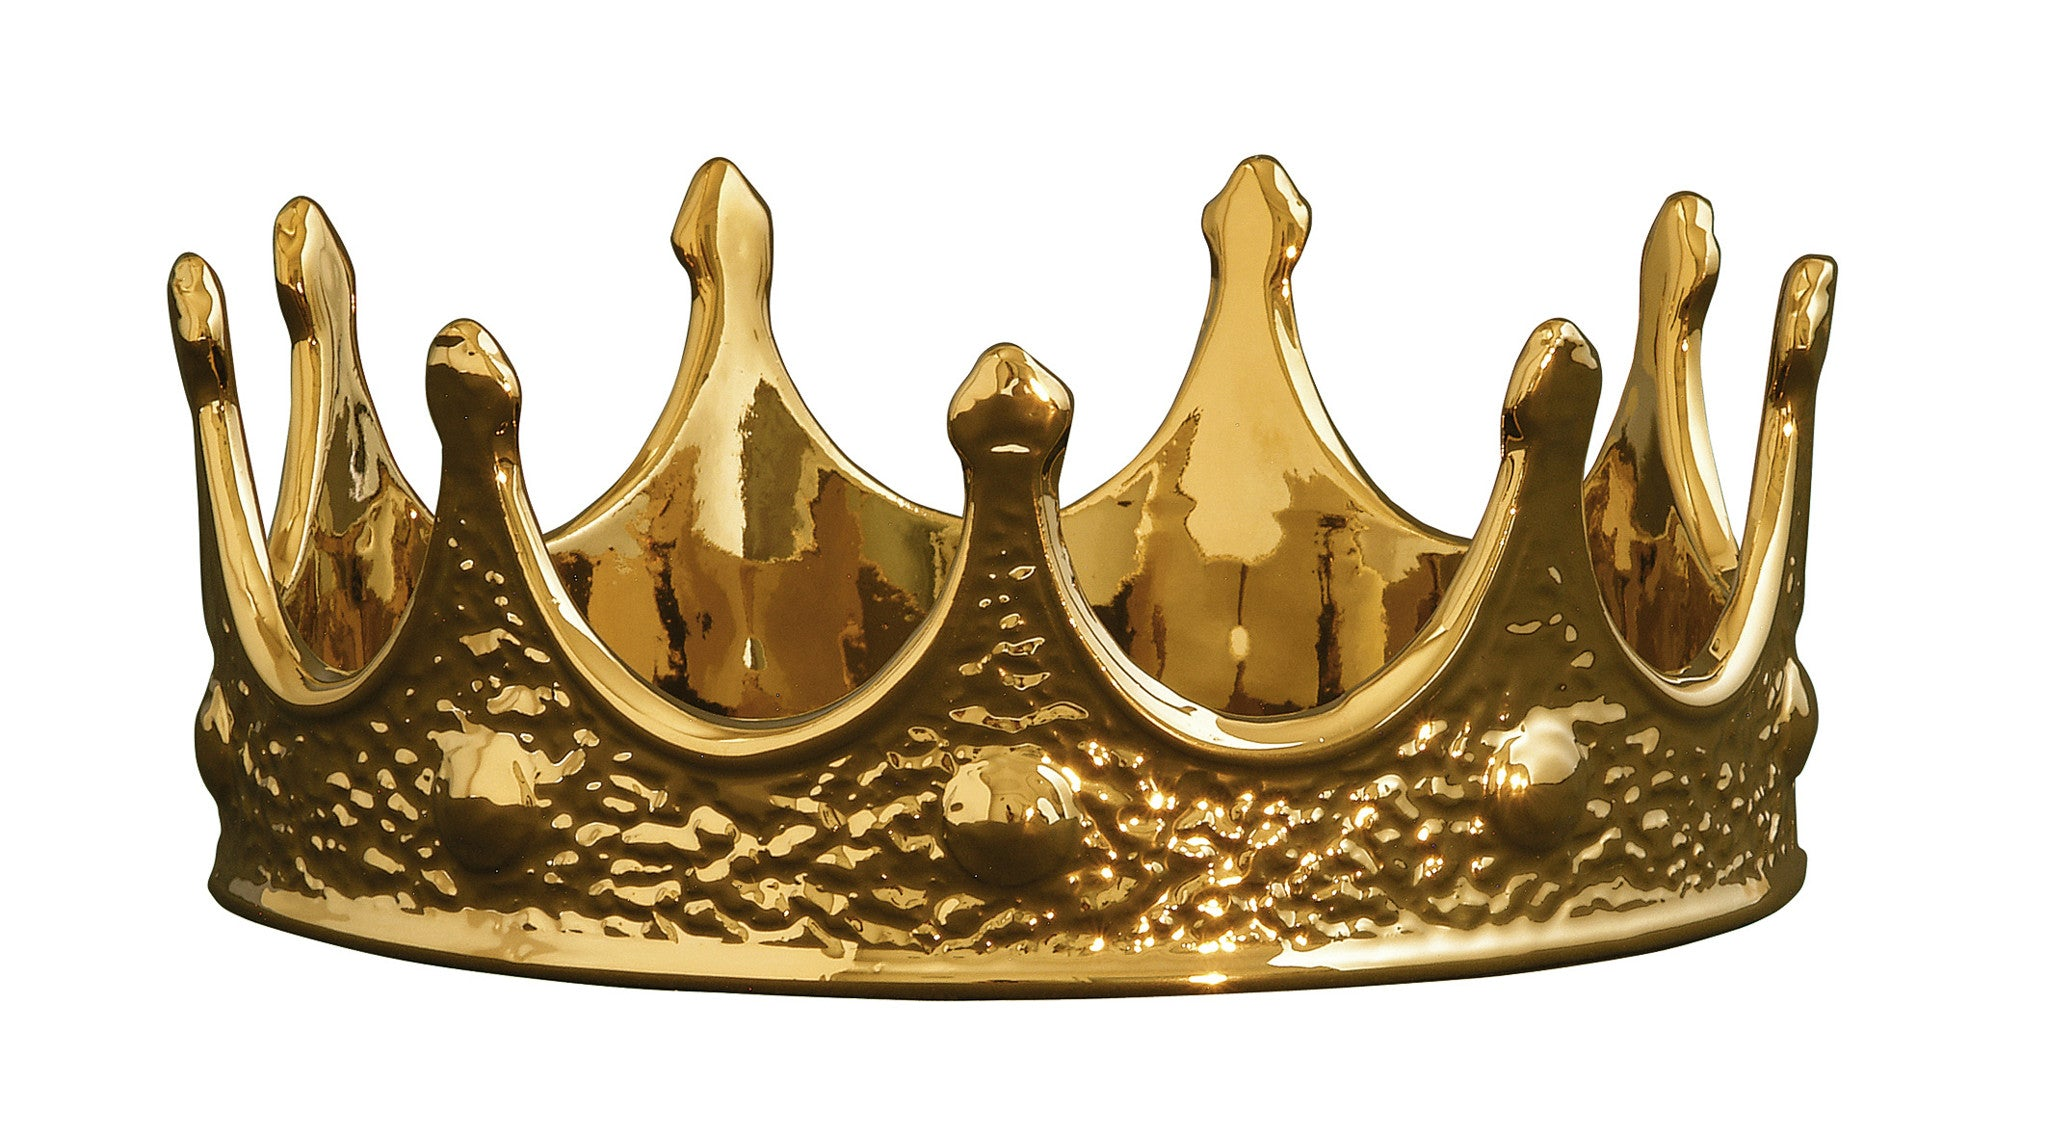 Limited Gold Edition Crown Burke Decor